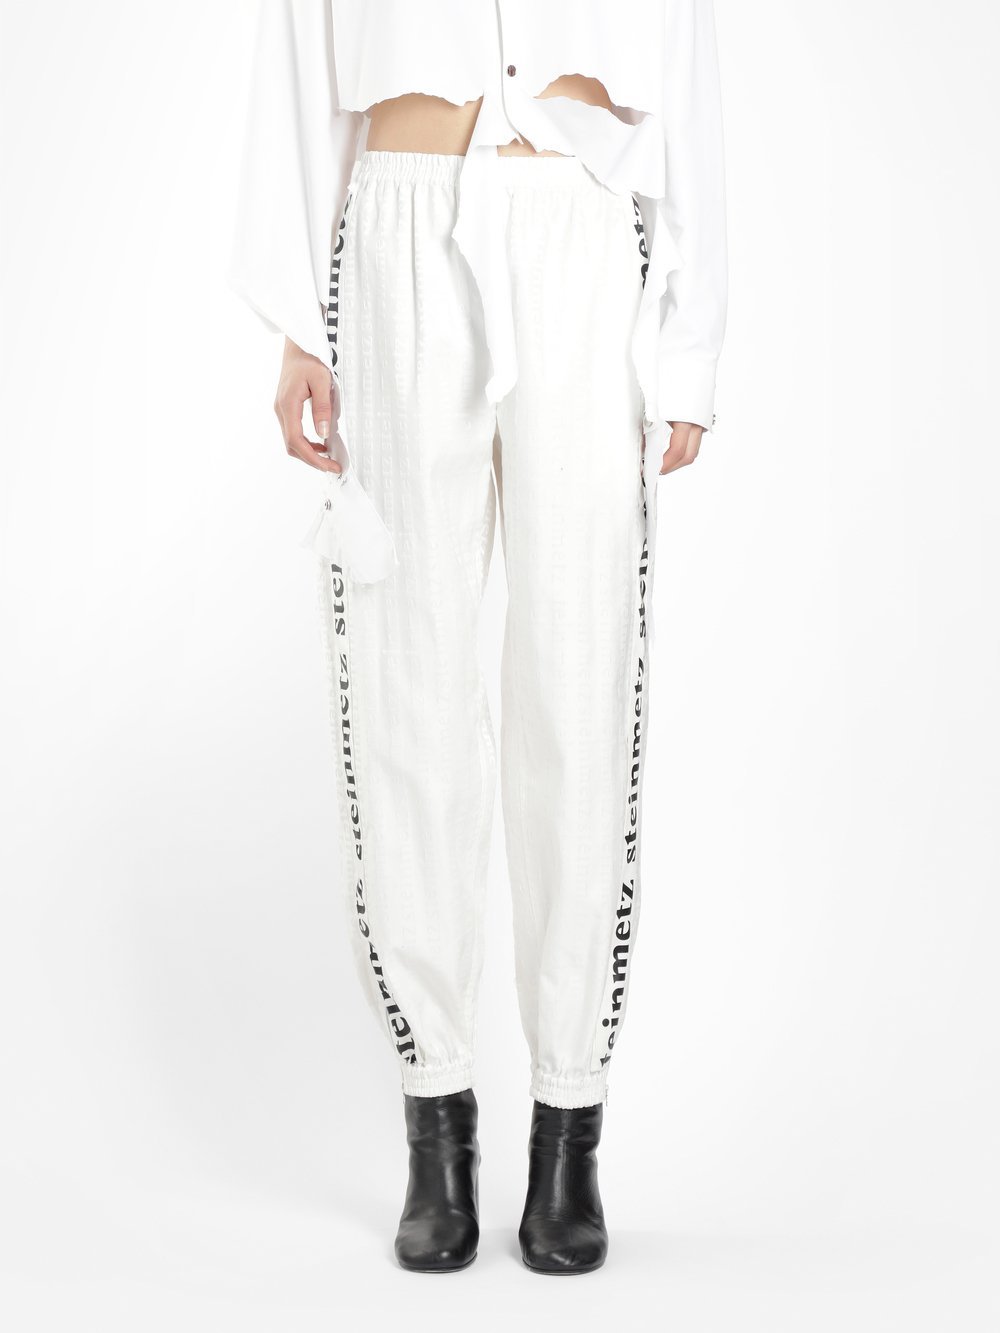 FAUSTINE STEINMETZ WOMEN'S OFF WHITE LOGO PATTERNED SWEATPANTS